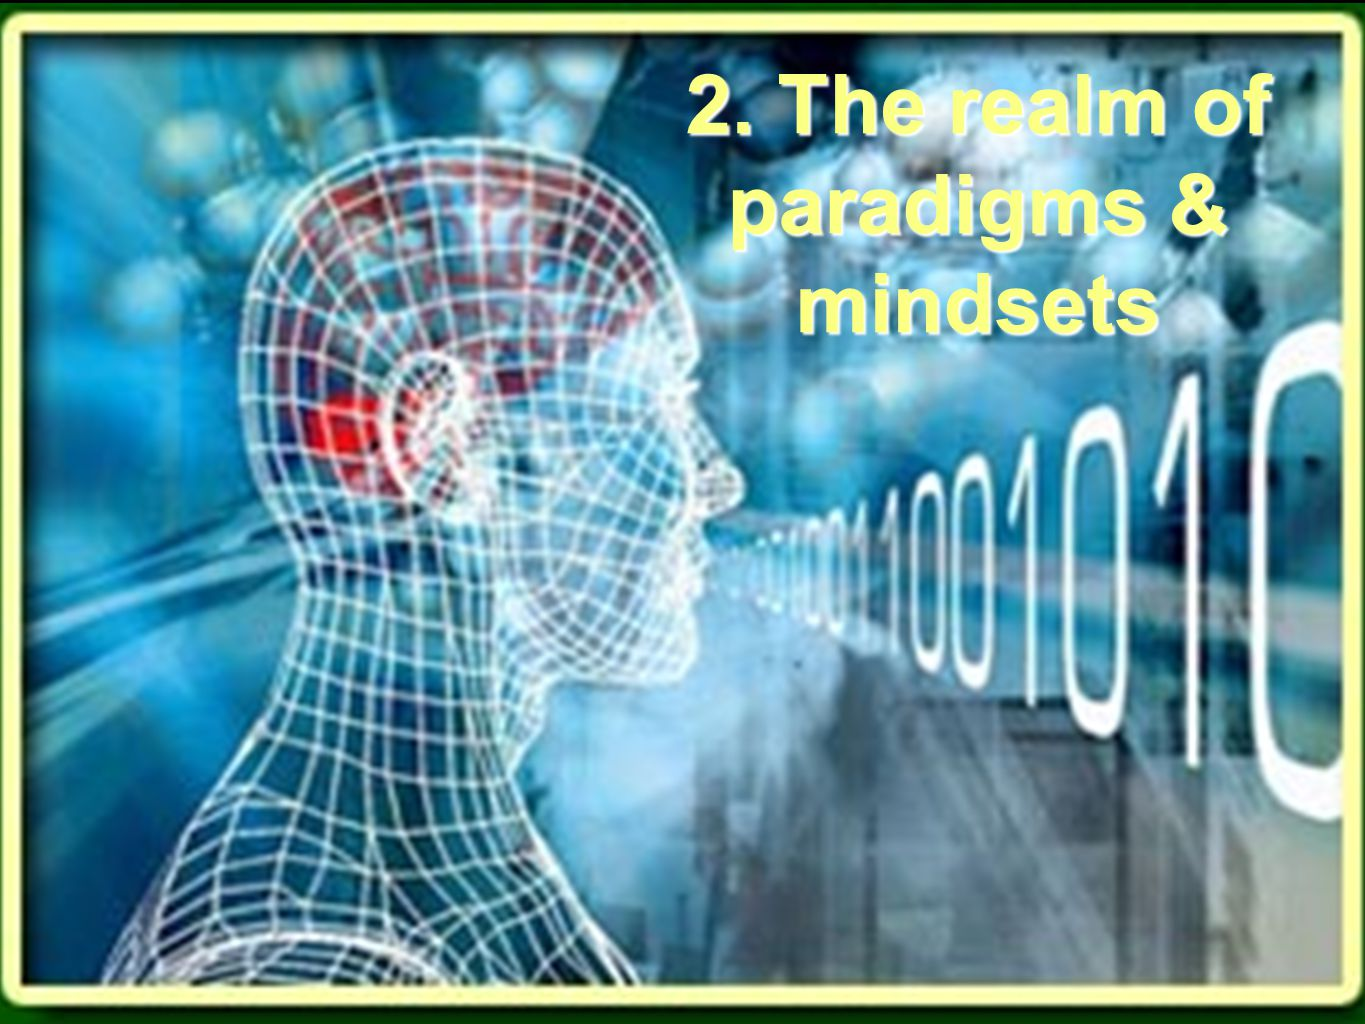 2. The realm of paradigms & mindsets